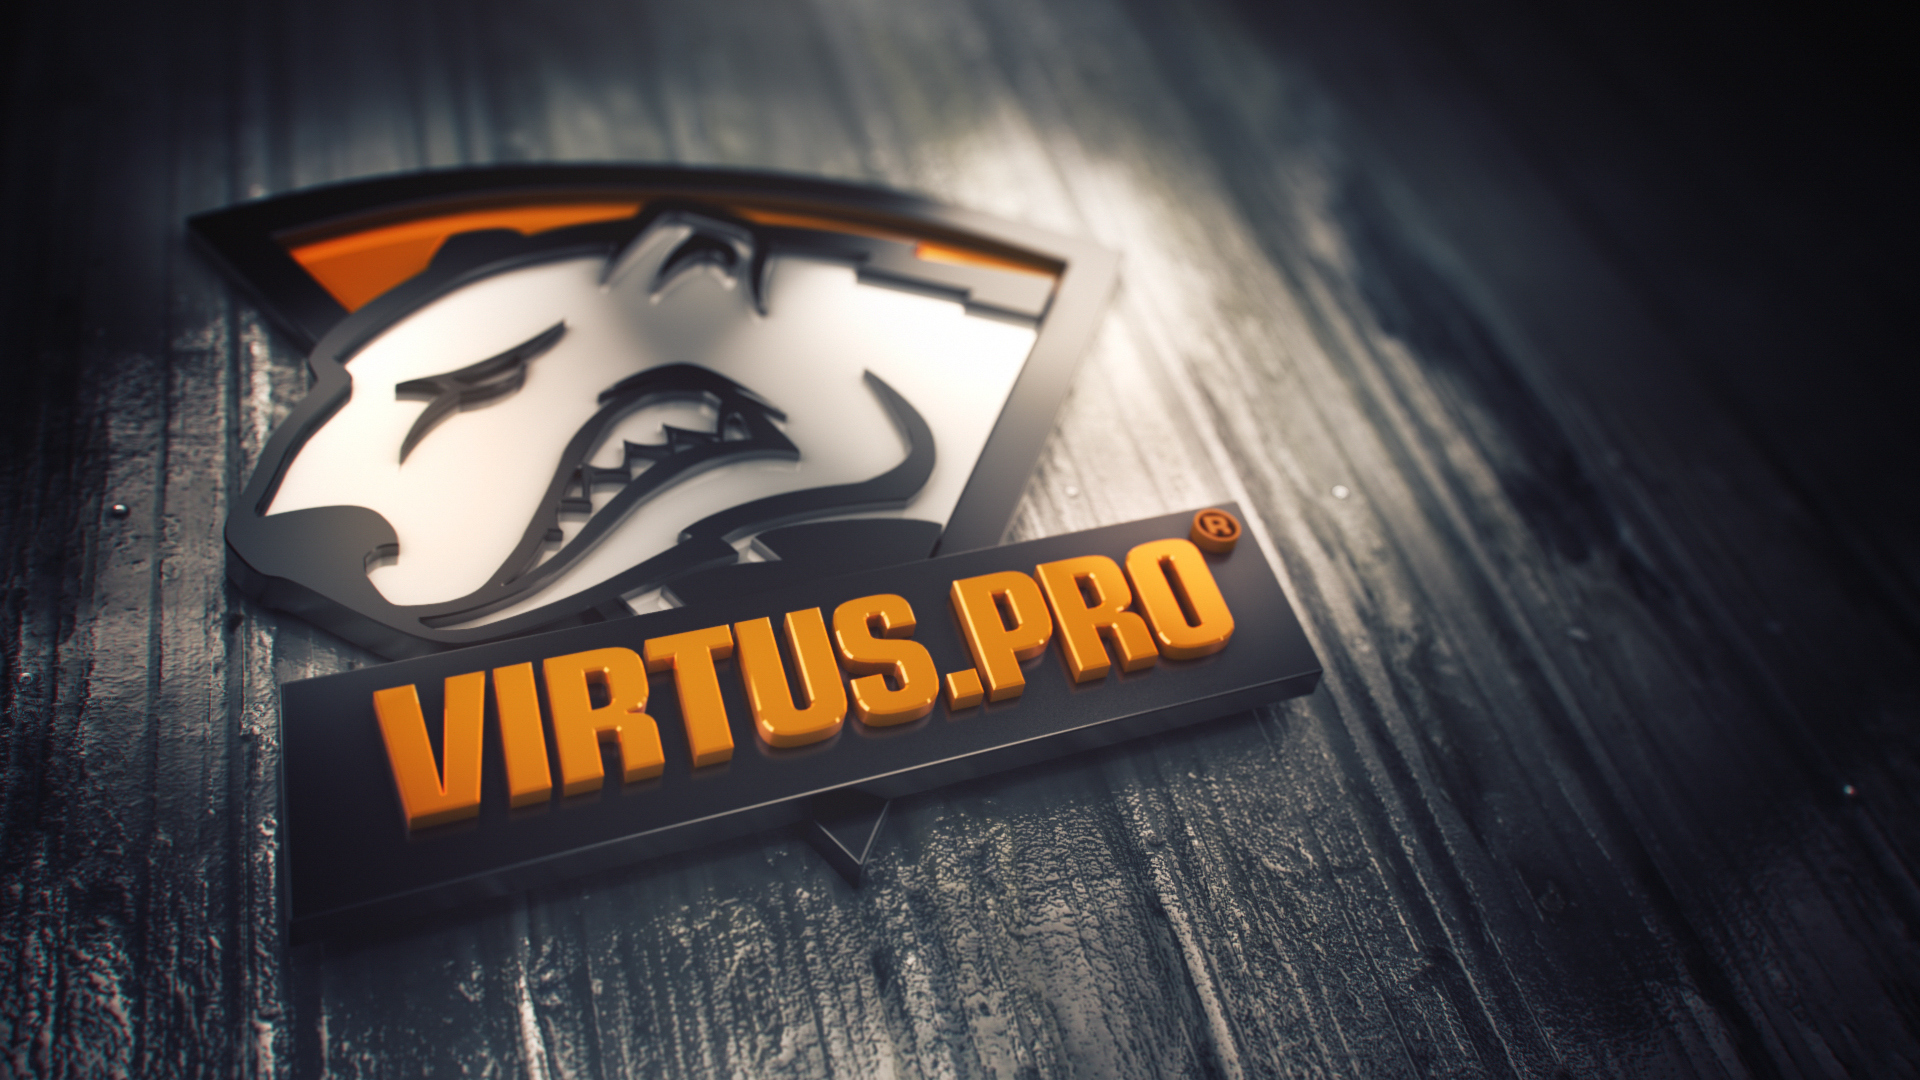 virtus pro logo 3d csgo wallpapers and backgrounds